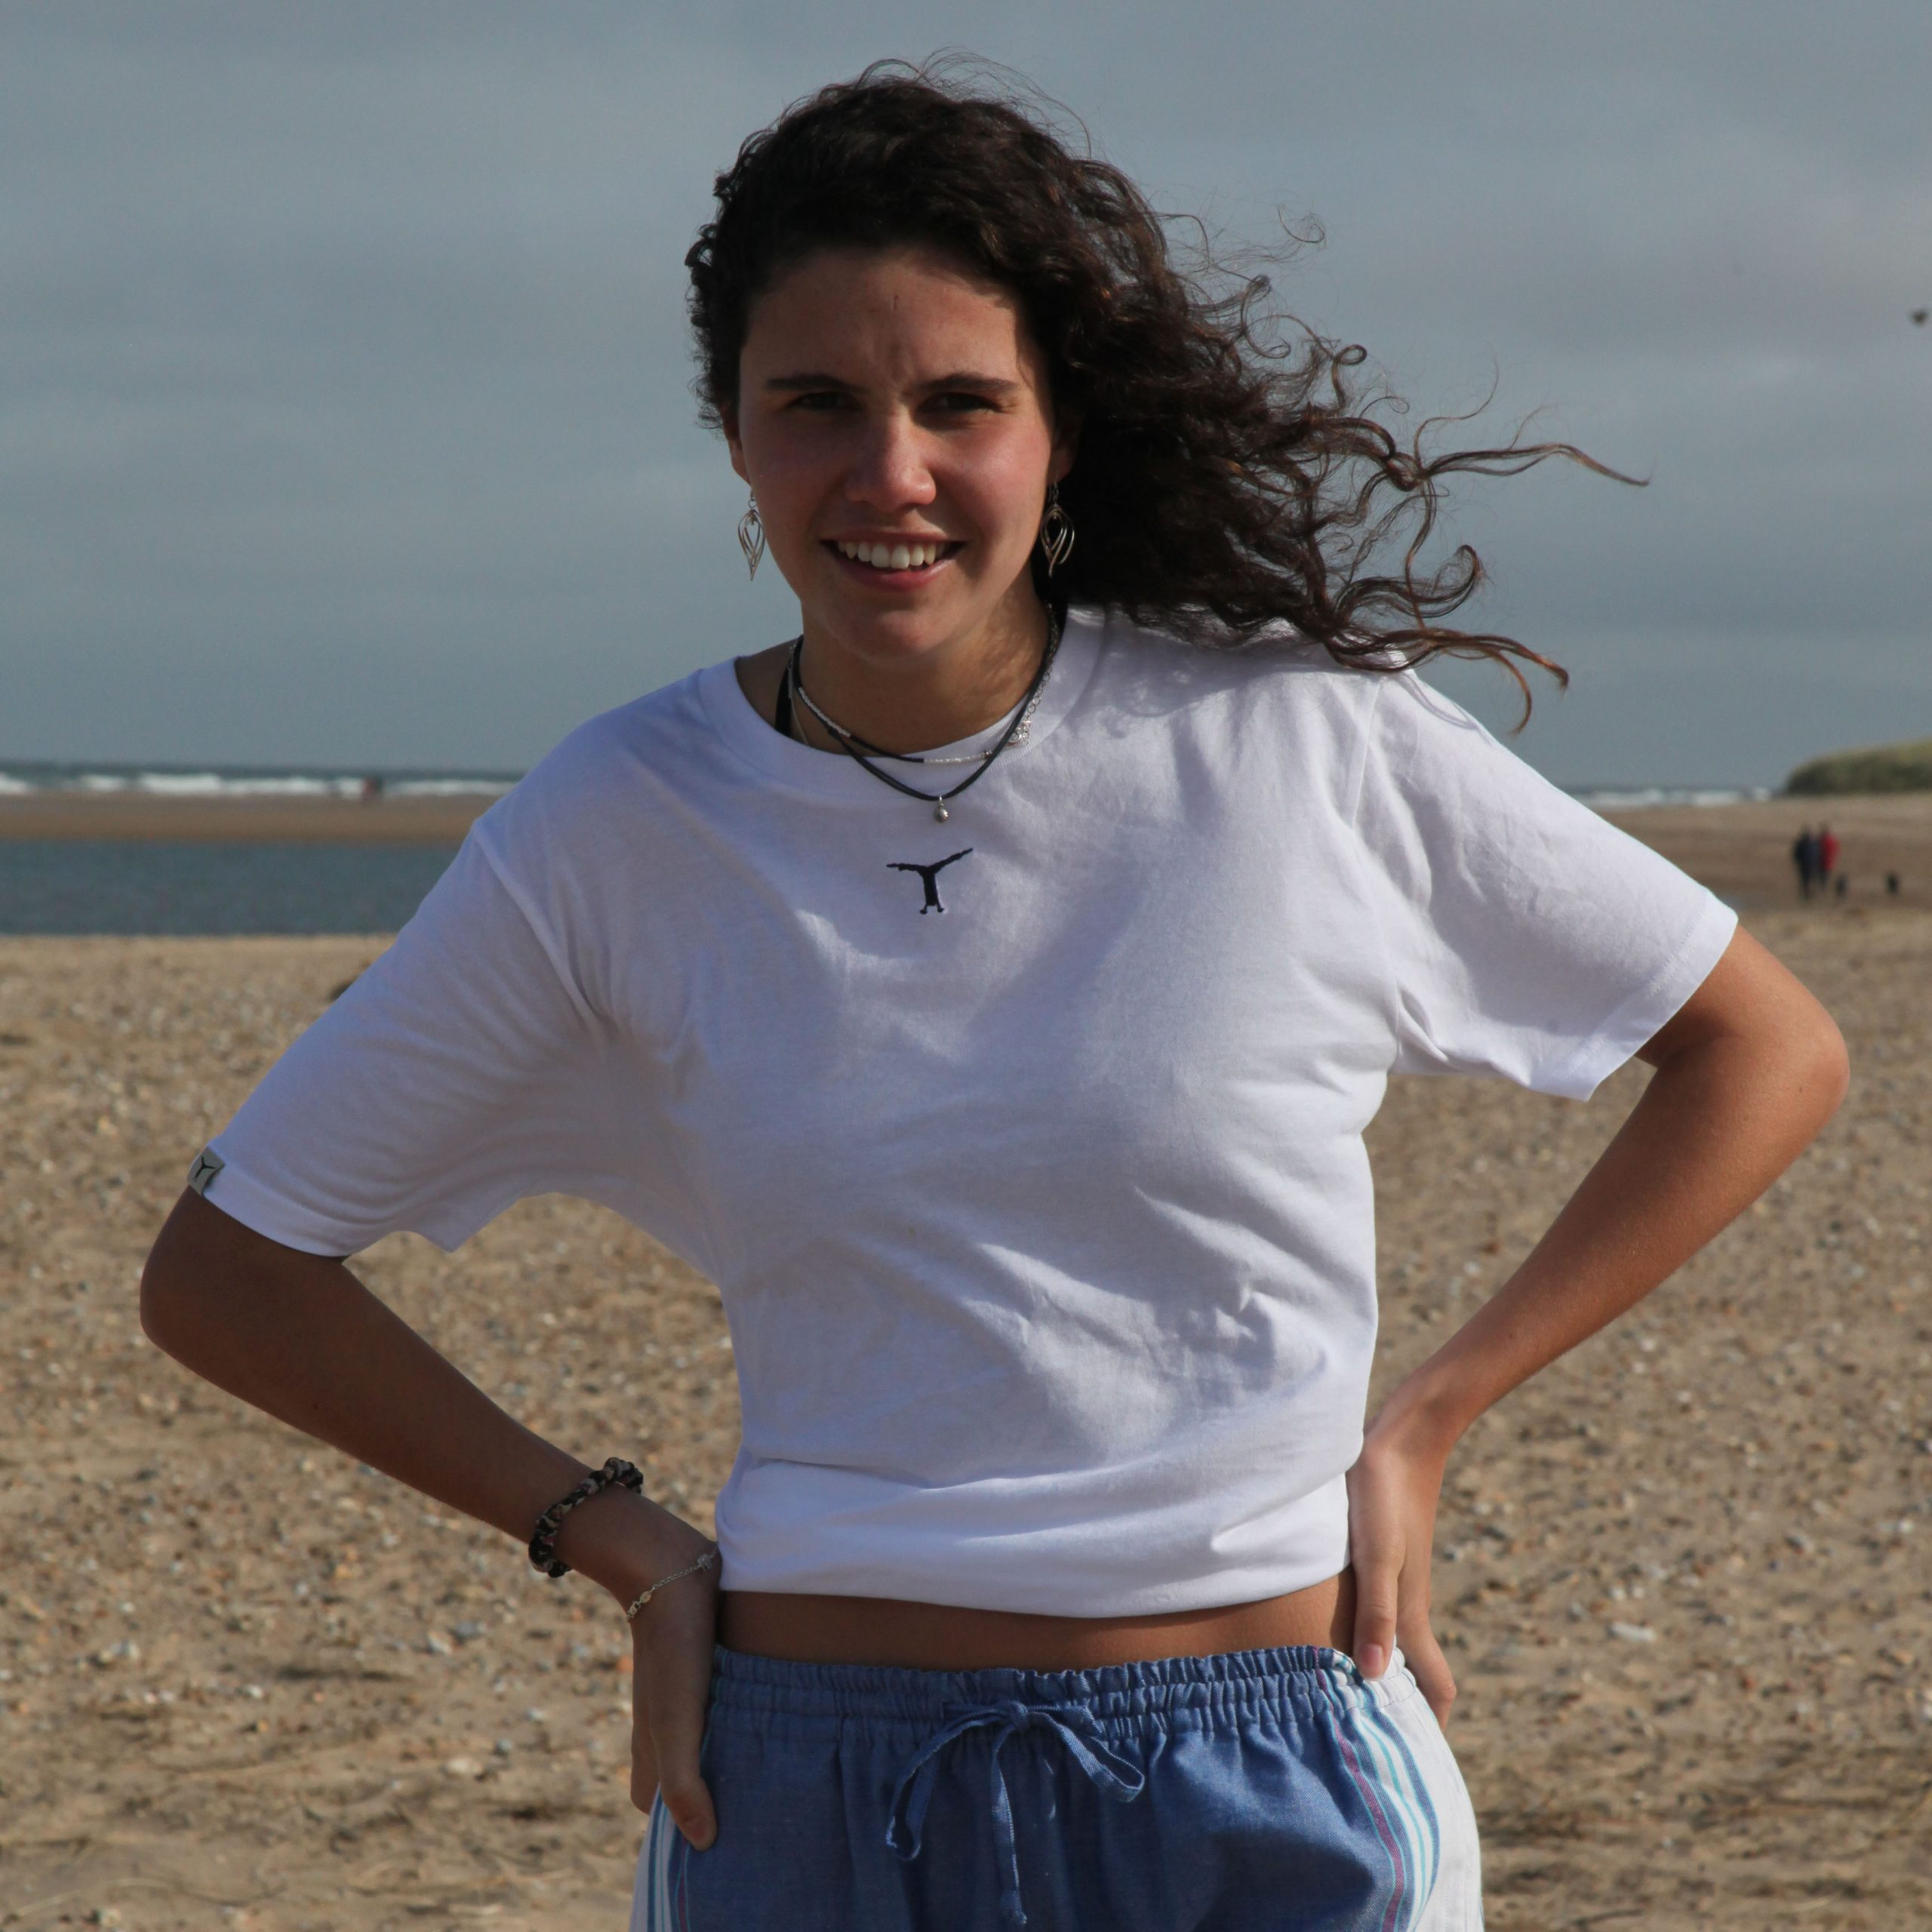 Smiling woman standing on the beach with her hands on her hips wearing a white t-shirt and kikoy yoga pants